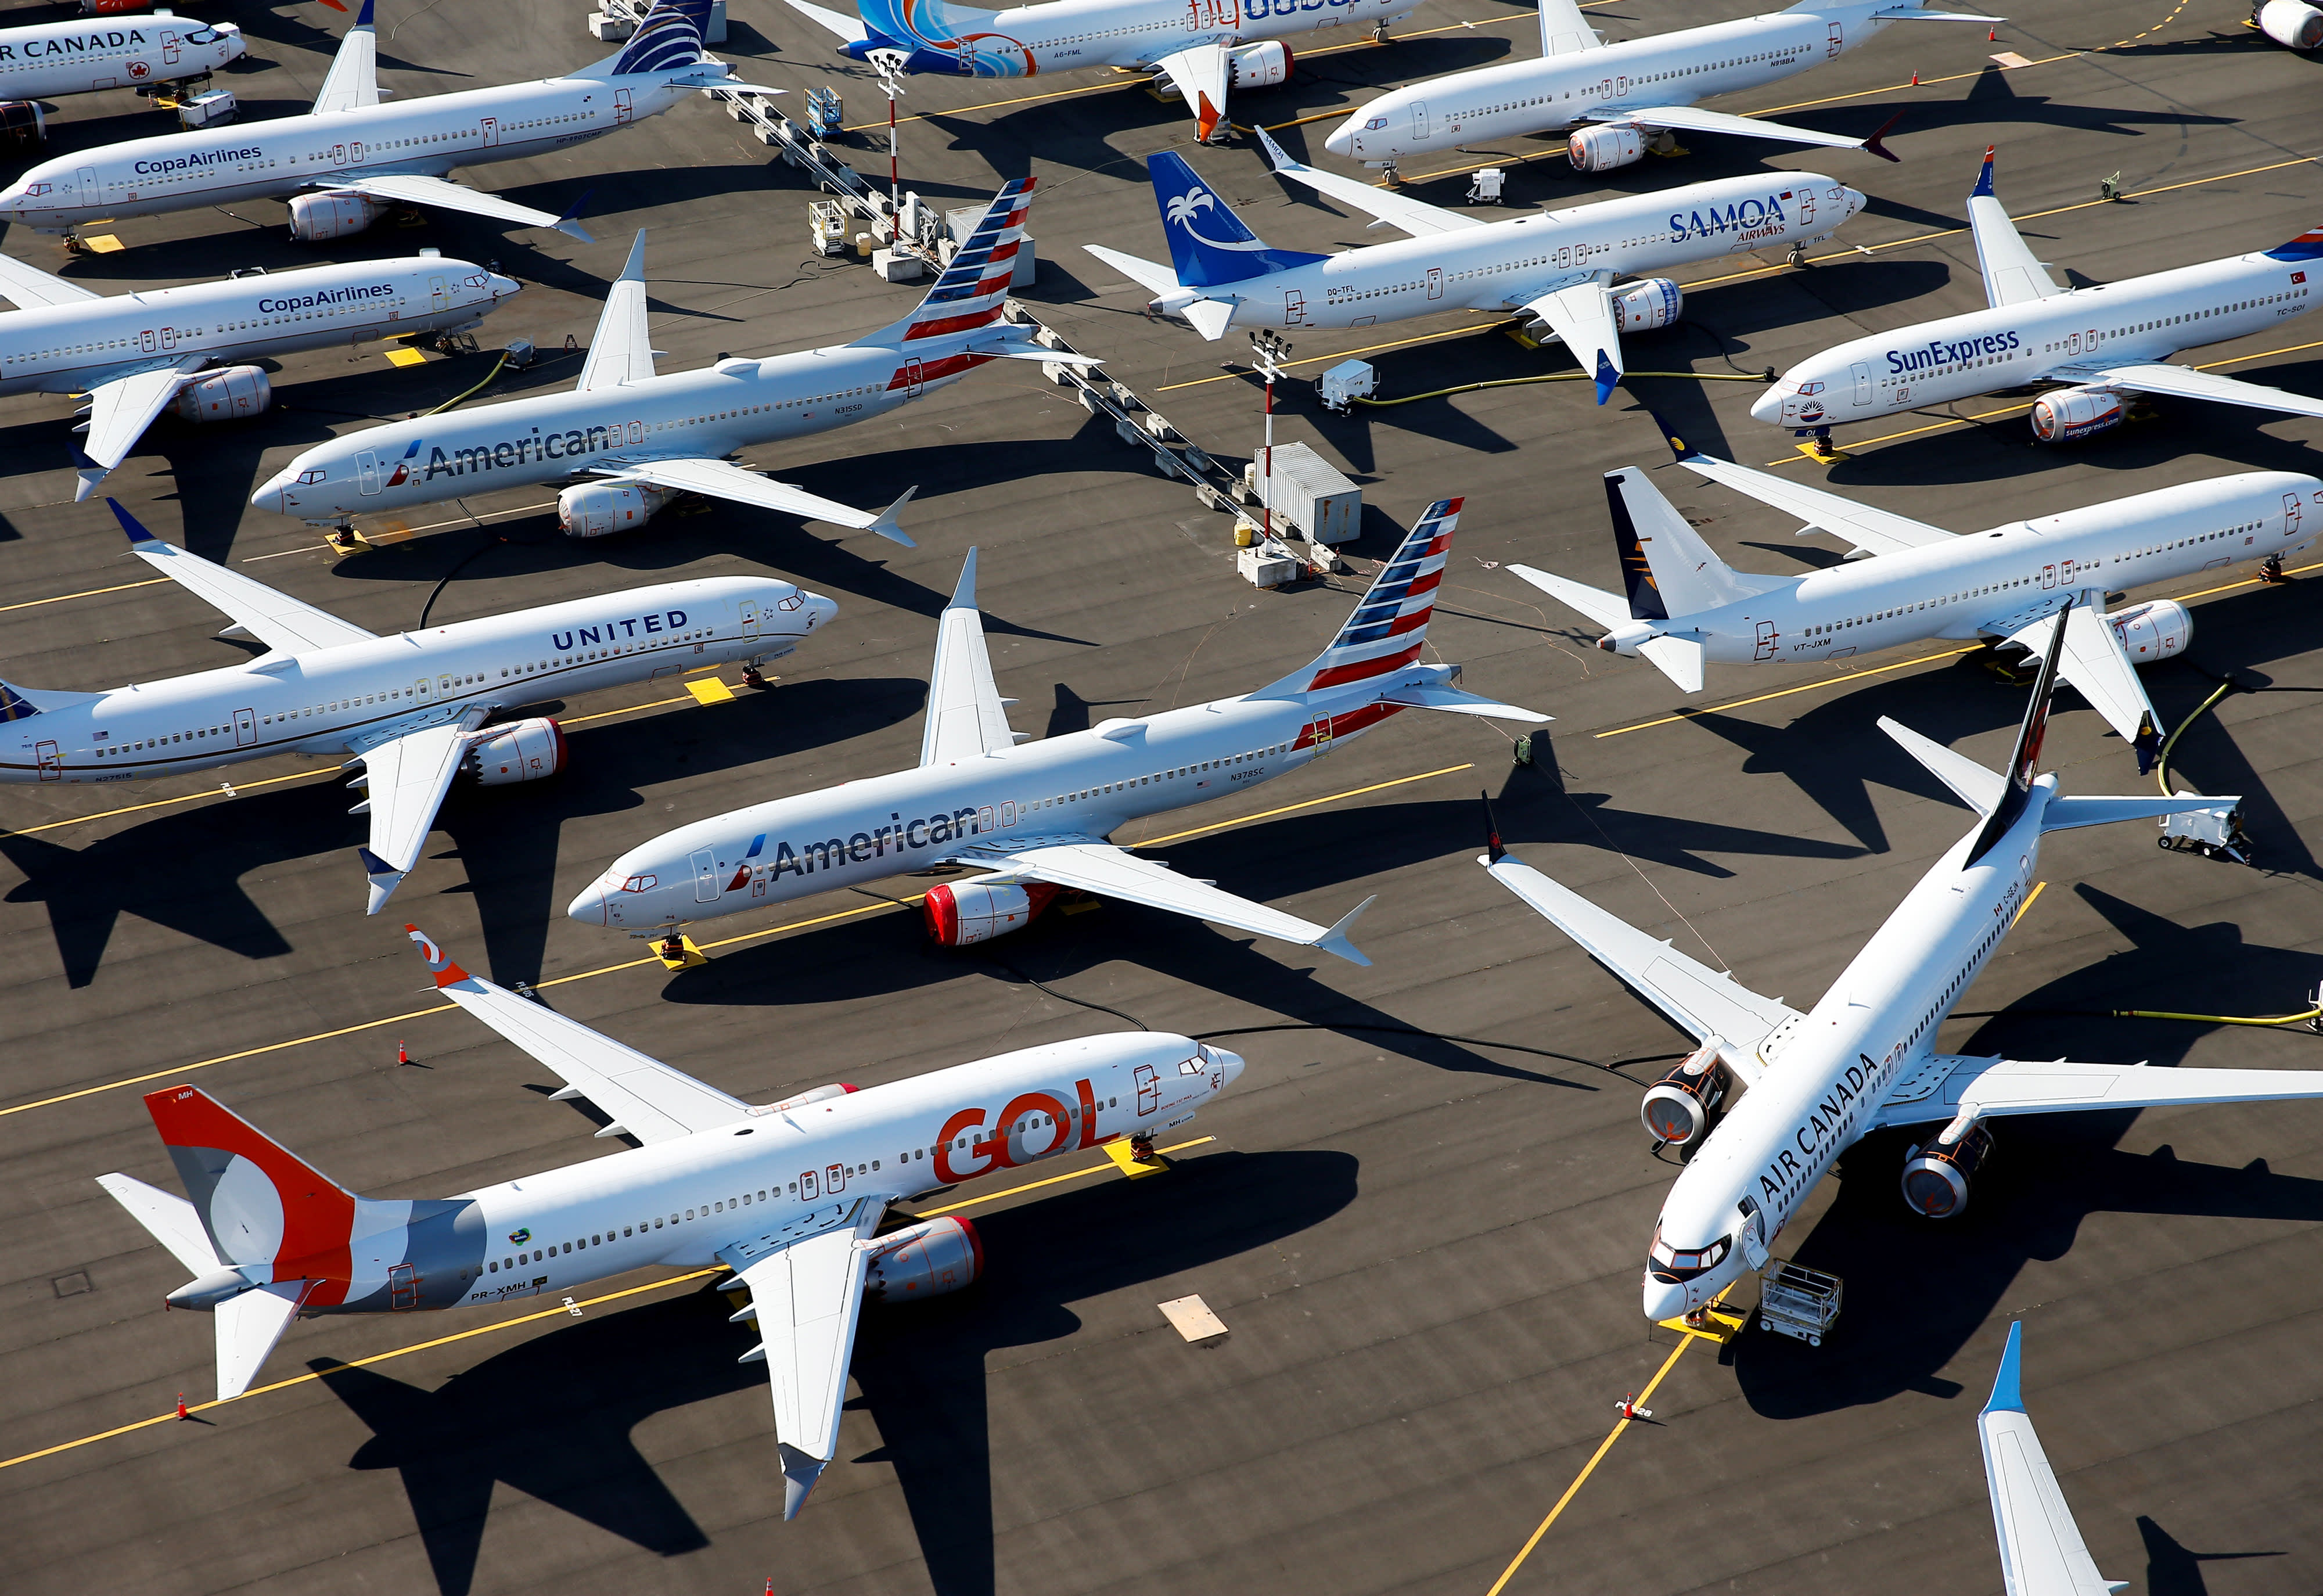 Travelers hesitant to fly the Boeing 737 Max, survey finds